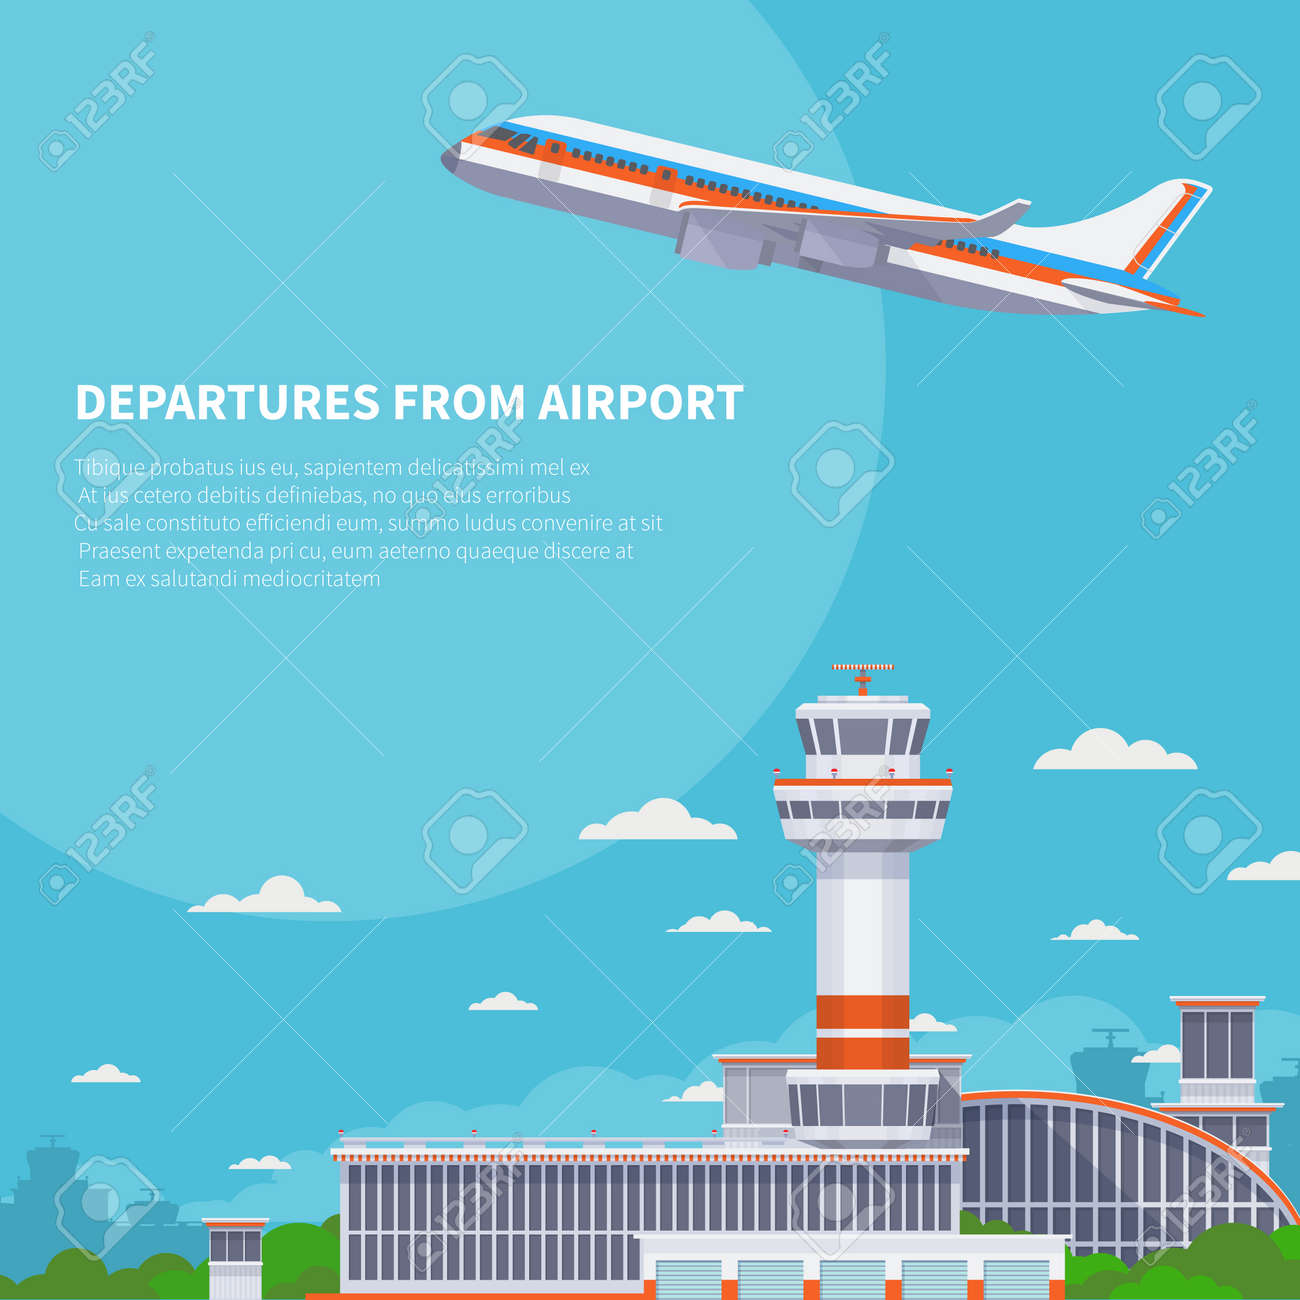 Airplane takeoff on runway in international airport. Tourism and air travel vector concept. Airplane departure from international terminal illustration - 167388675